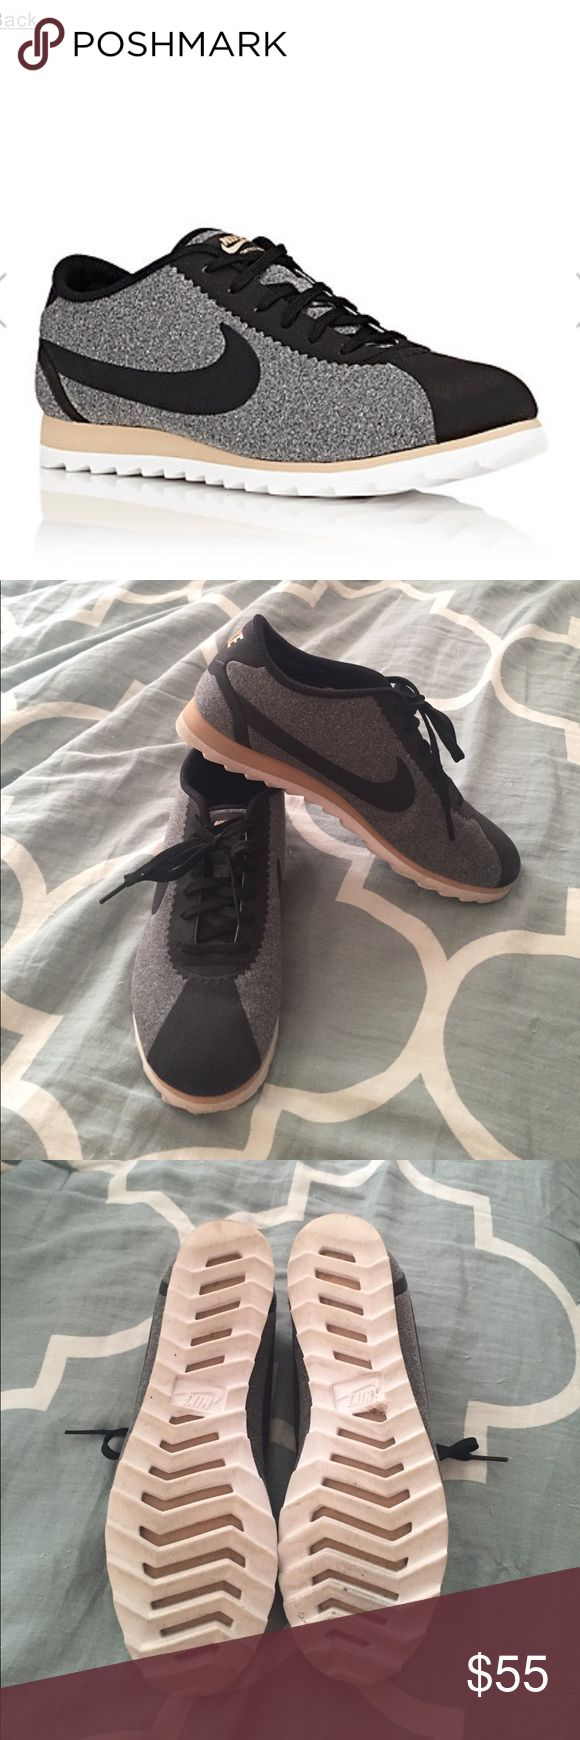 Nike cortez sneakers. Grey and black fabric low top sneakers. Size 7.5 and in excellent condition! Only worn a few times. Nike Shoes Sneakers